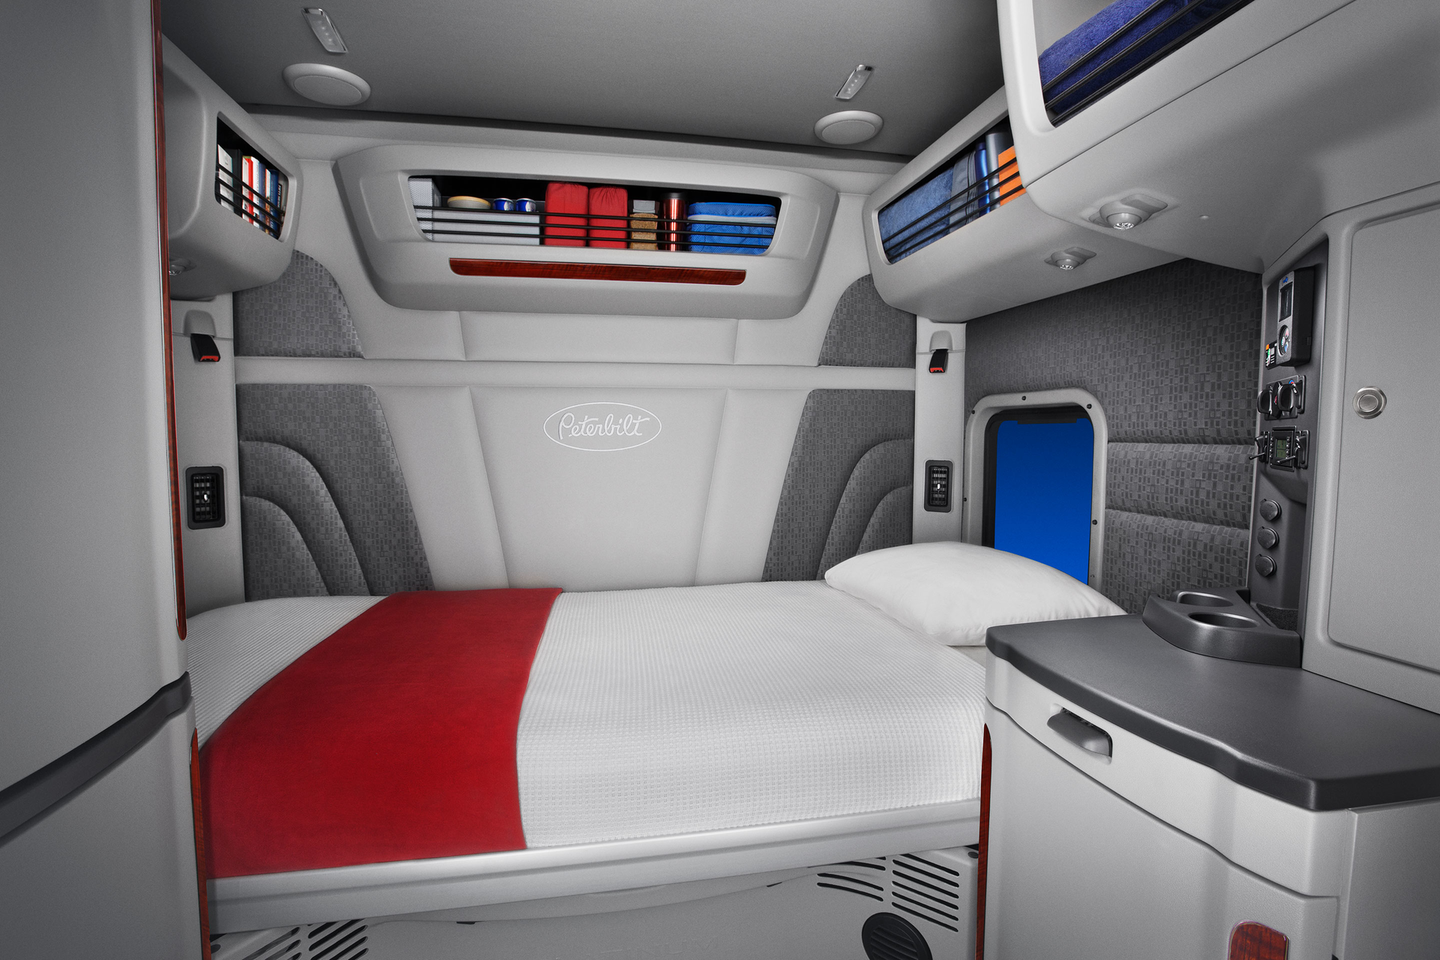 The Peterbilt 579 UltraLoft has an interior height of 8 ft. to go with more than 70 cu. ft. of sleeper space.